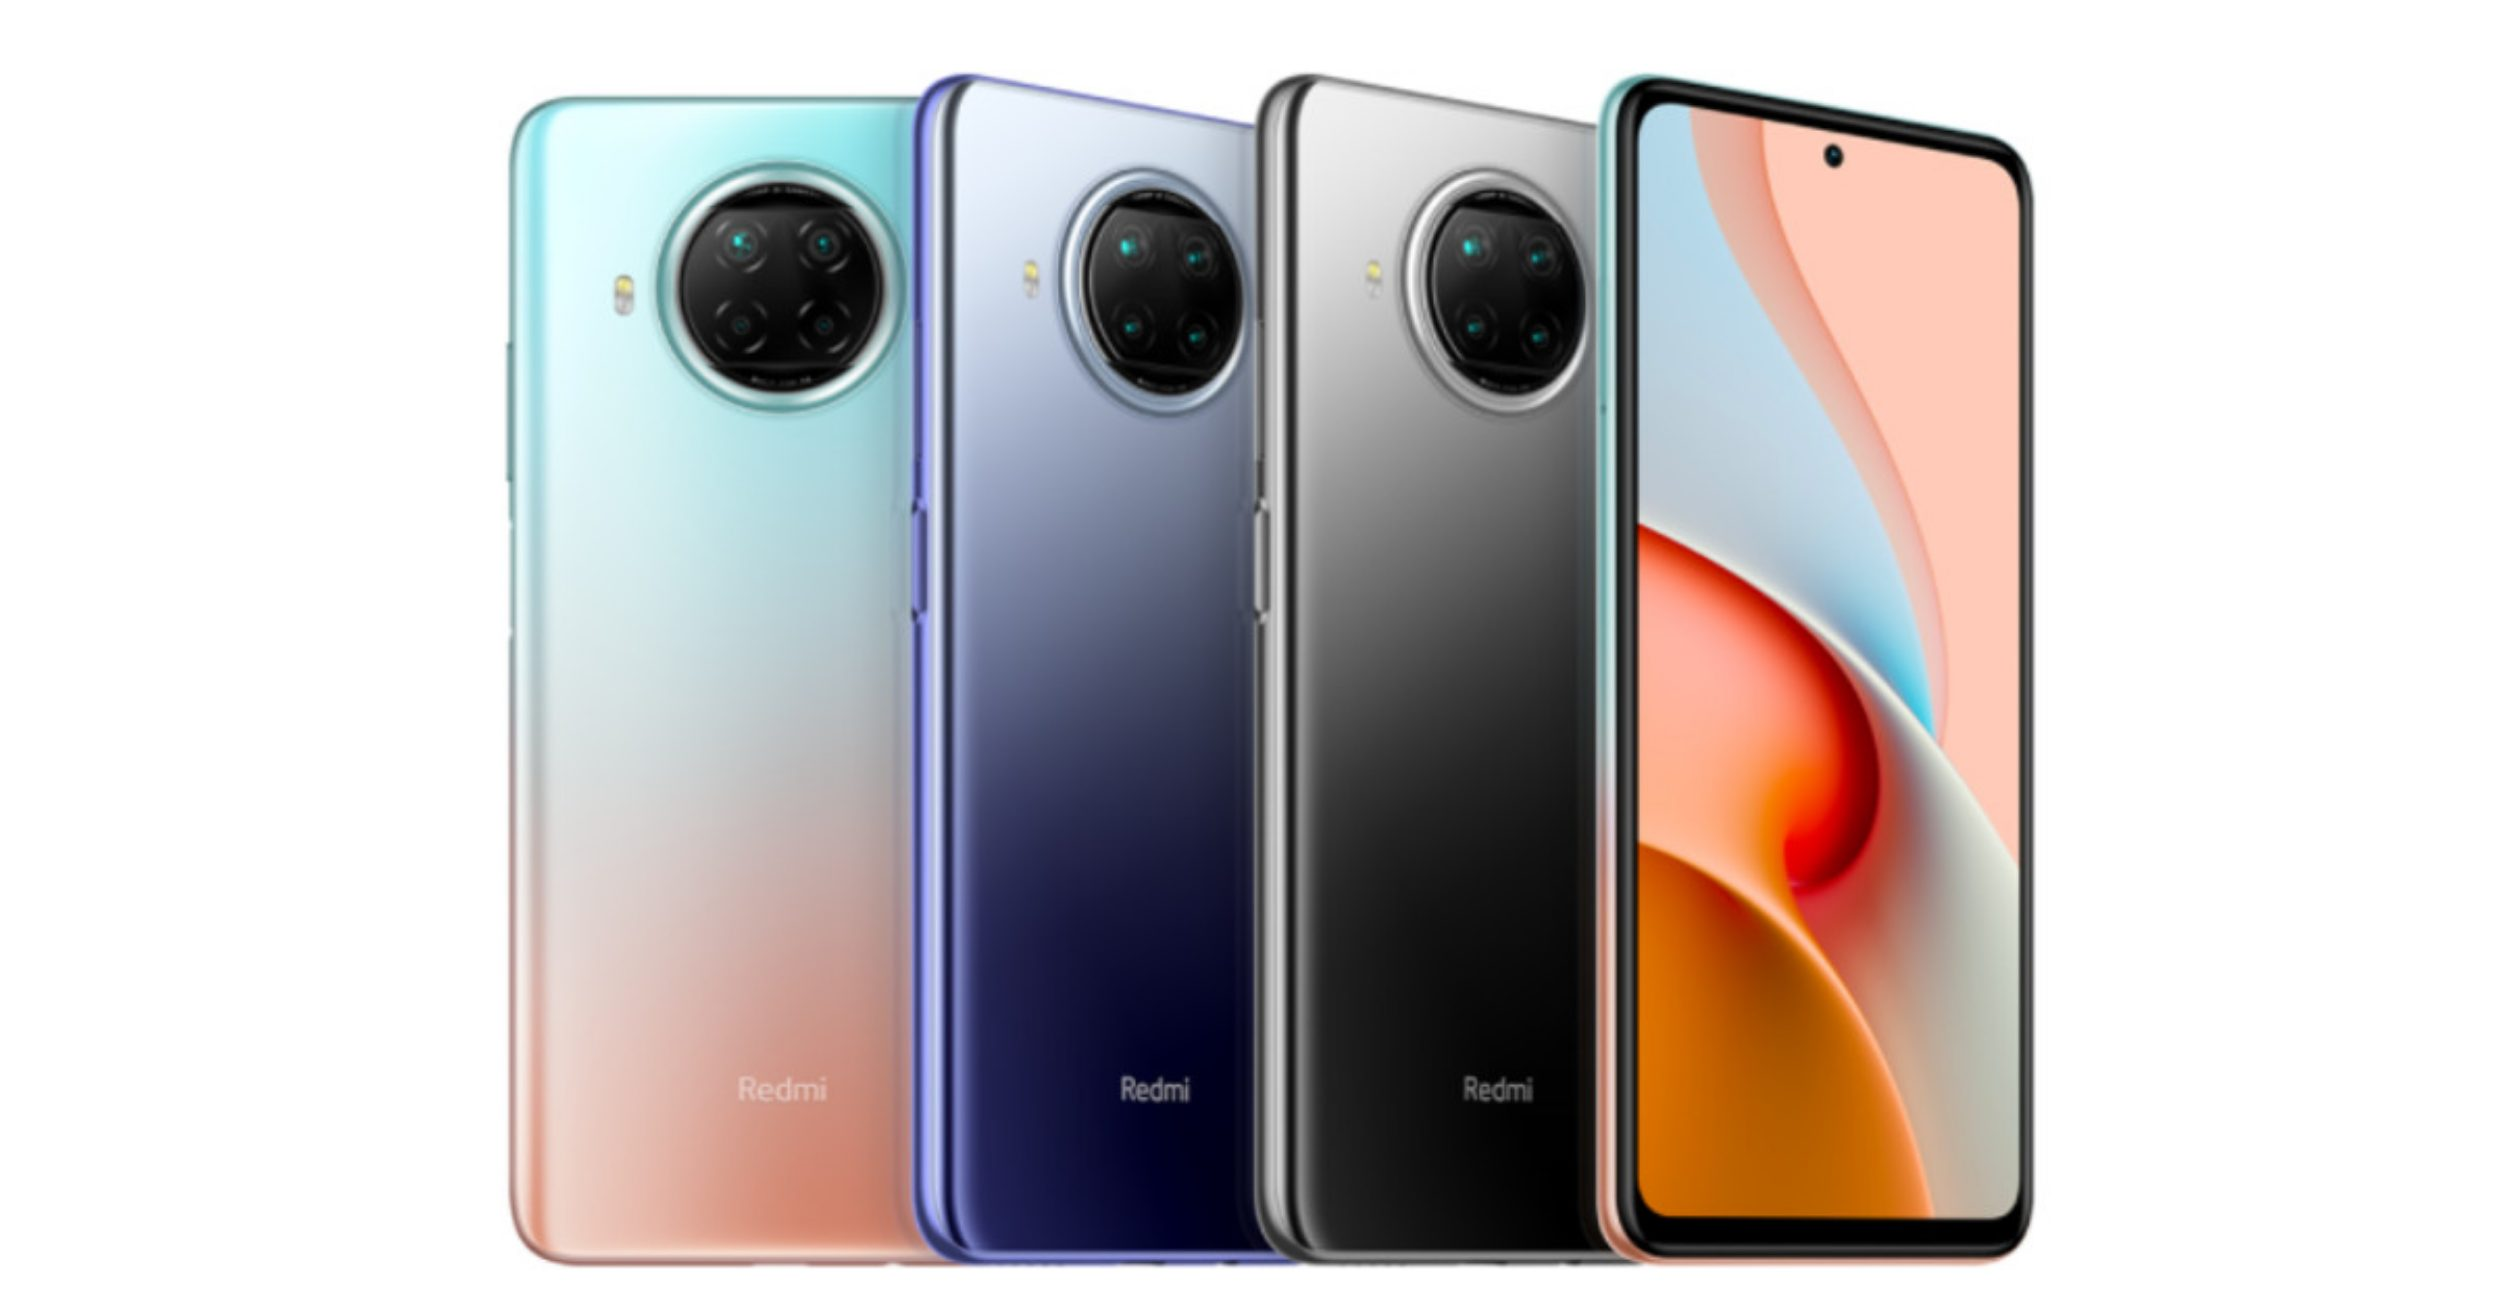 redmi-note-9-pro-5g-official-price-specs-release-date-availability-philippines